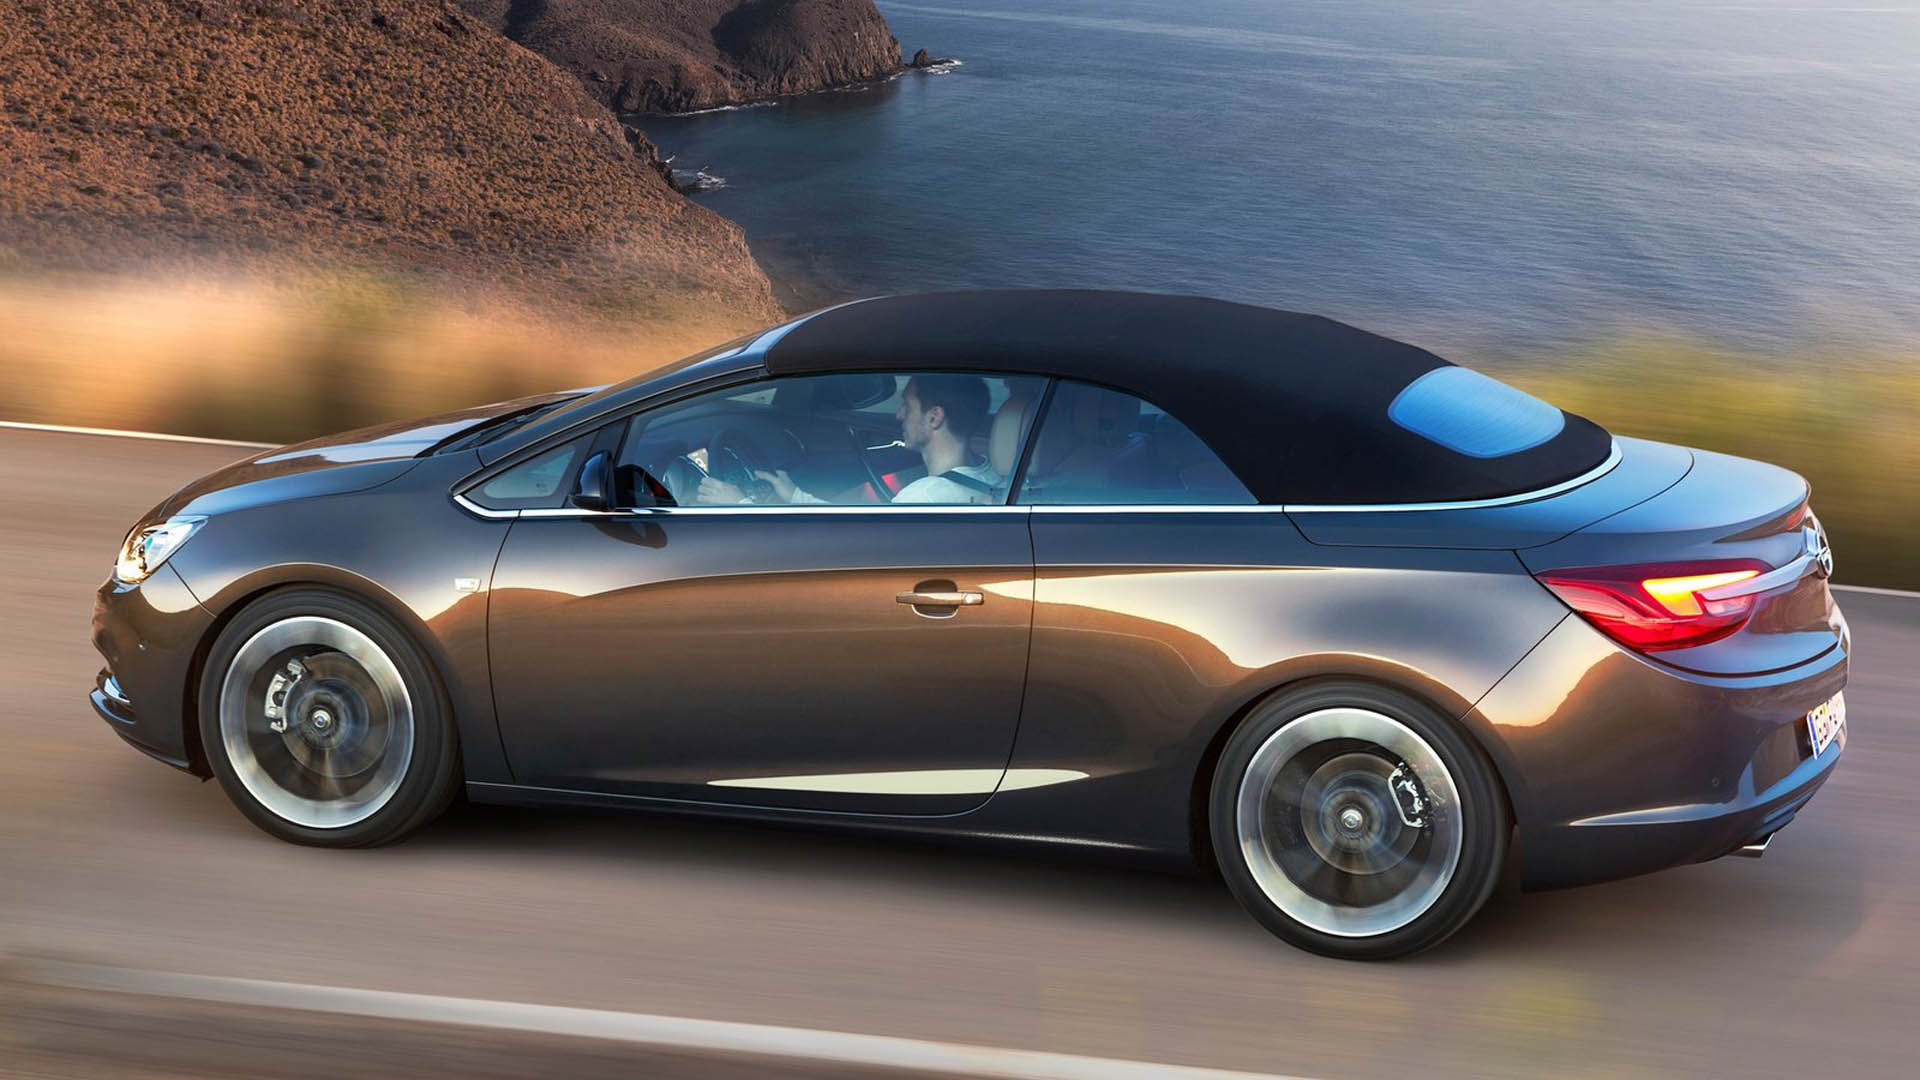 Opel Cascada 2013 4 Free Download Image Of